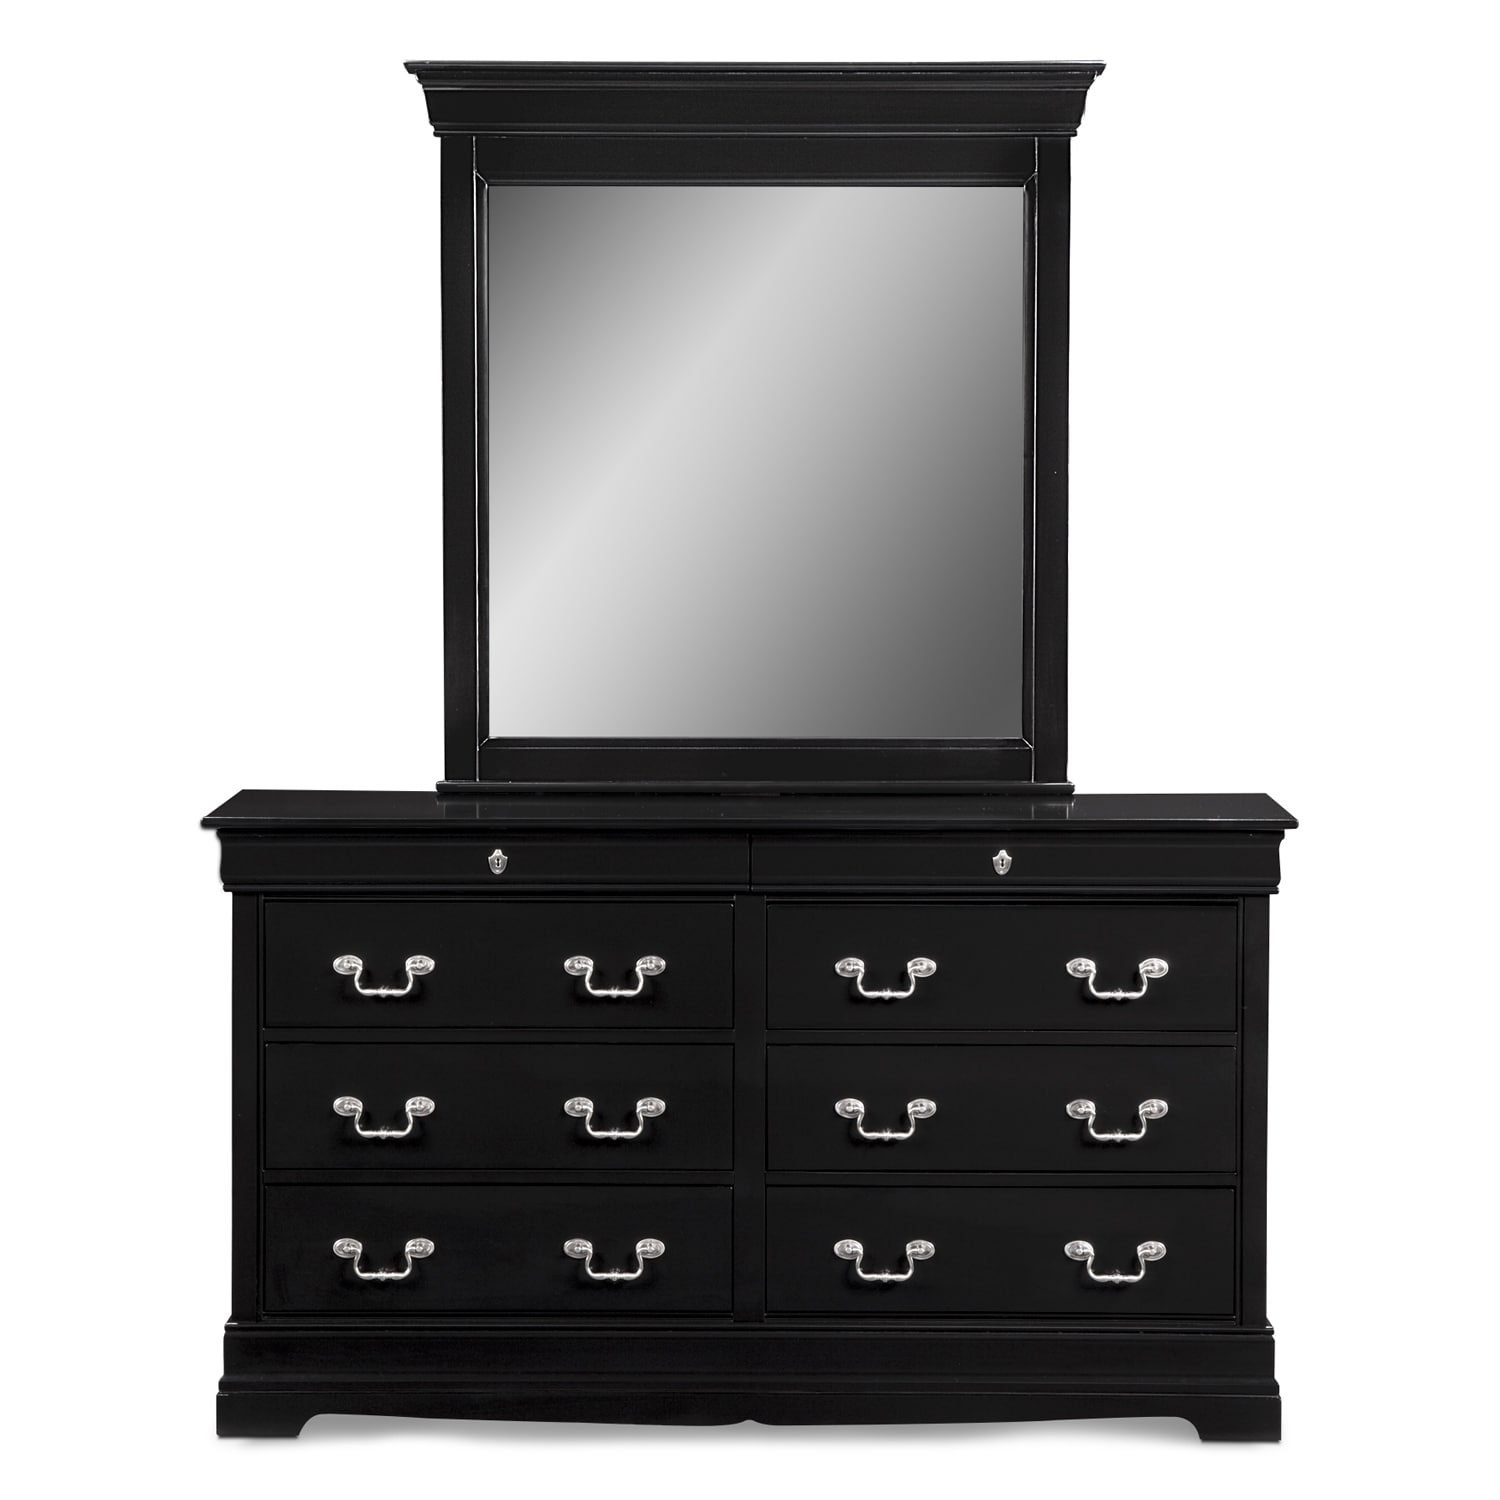 Neo Classic Dresser And Mirror Black Value City Furniture